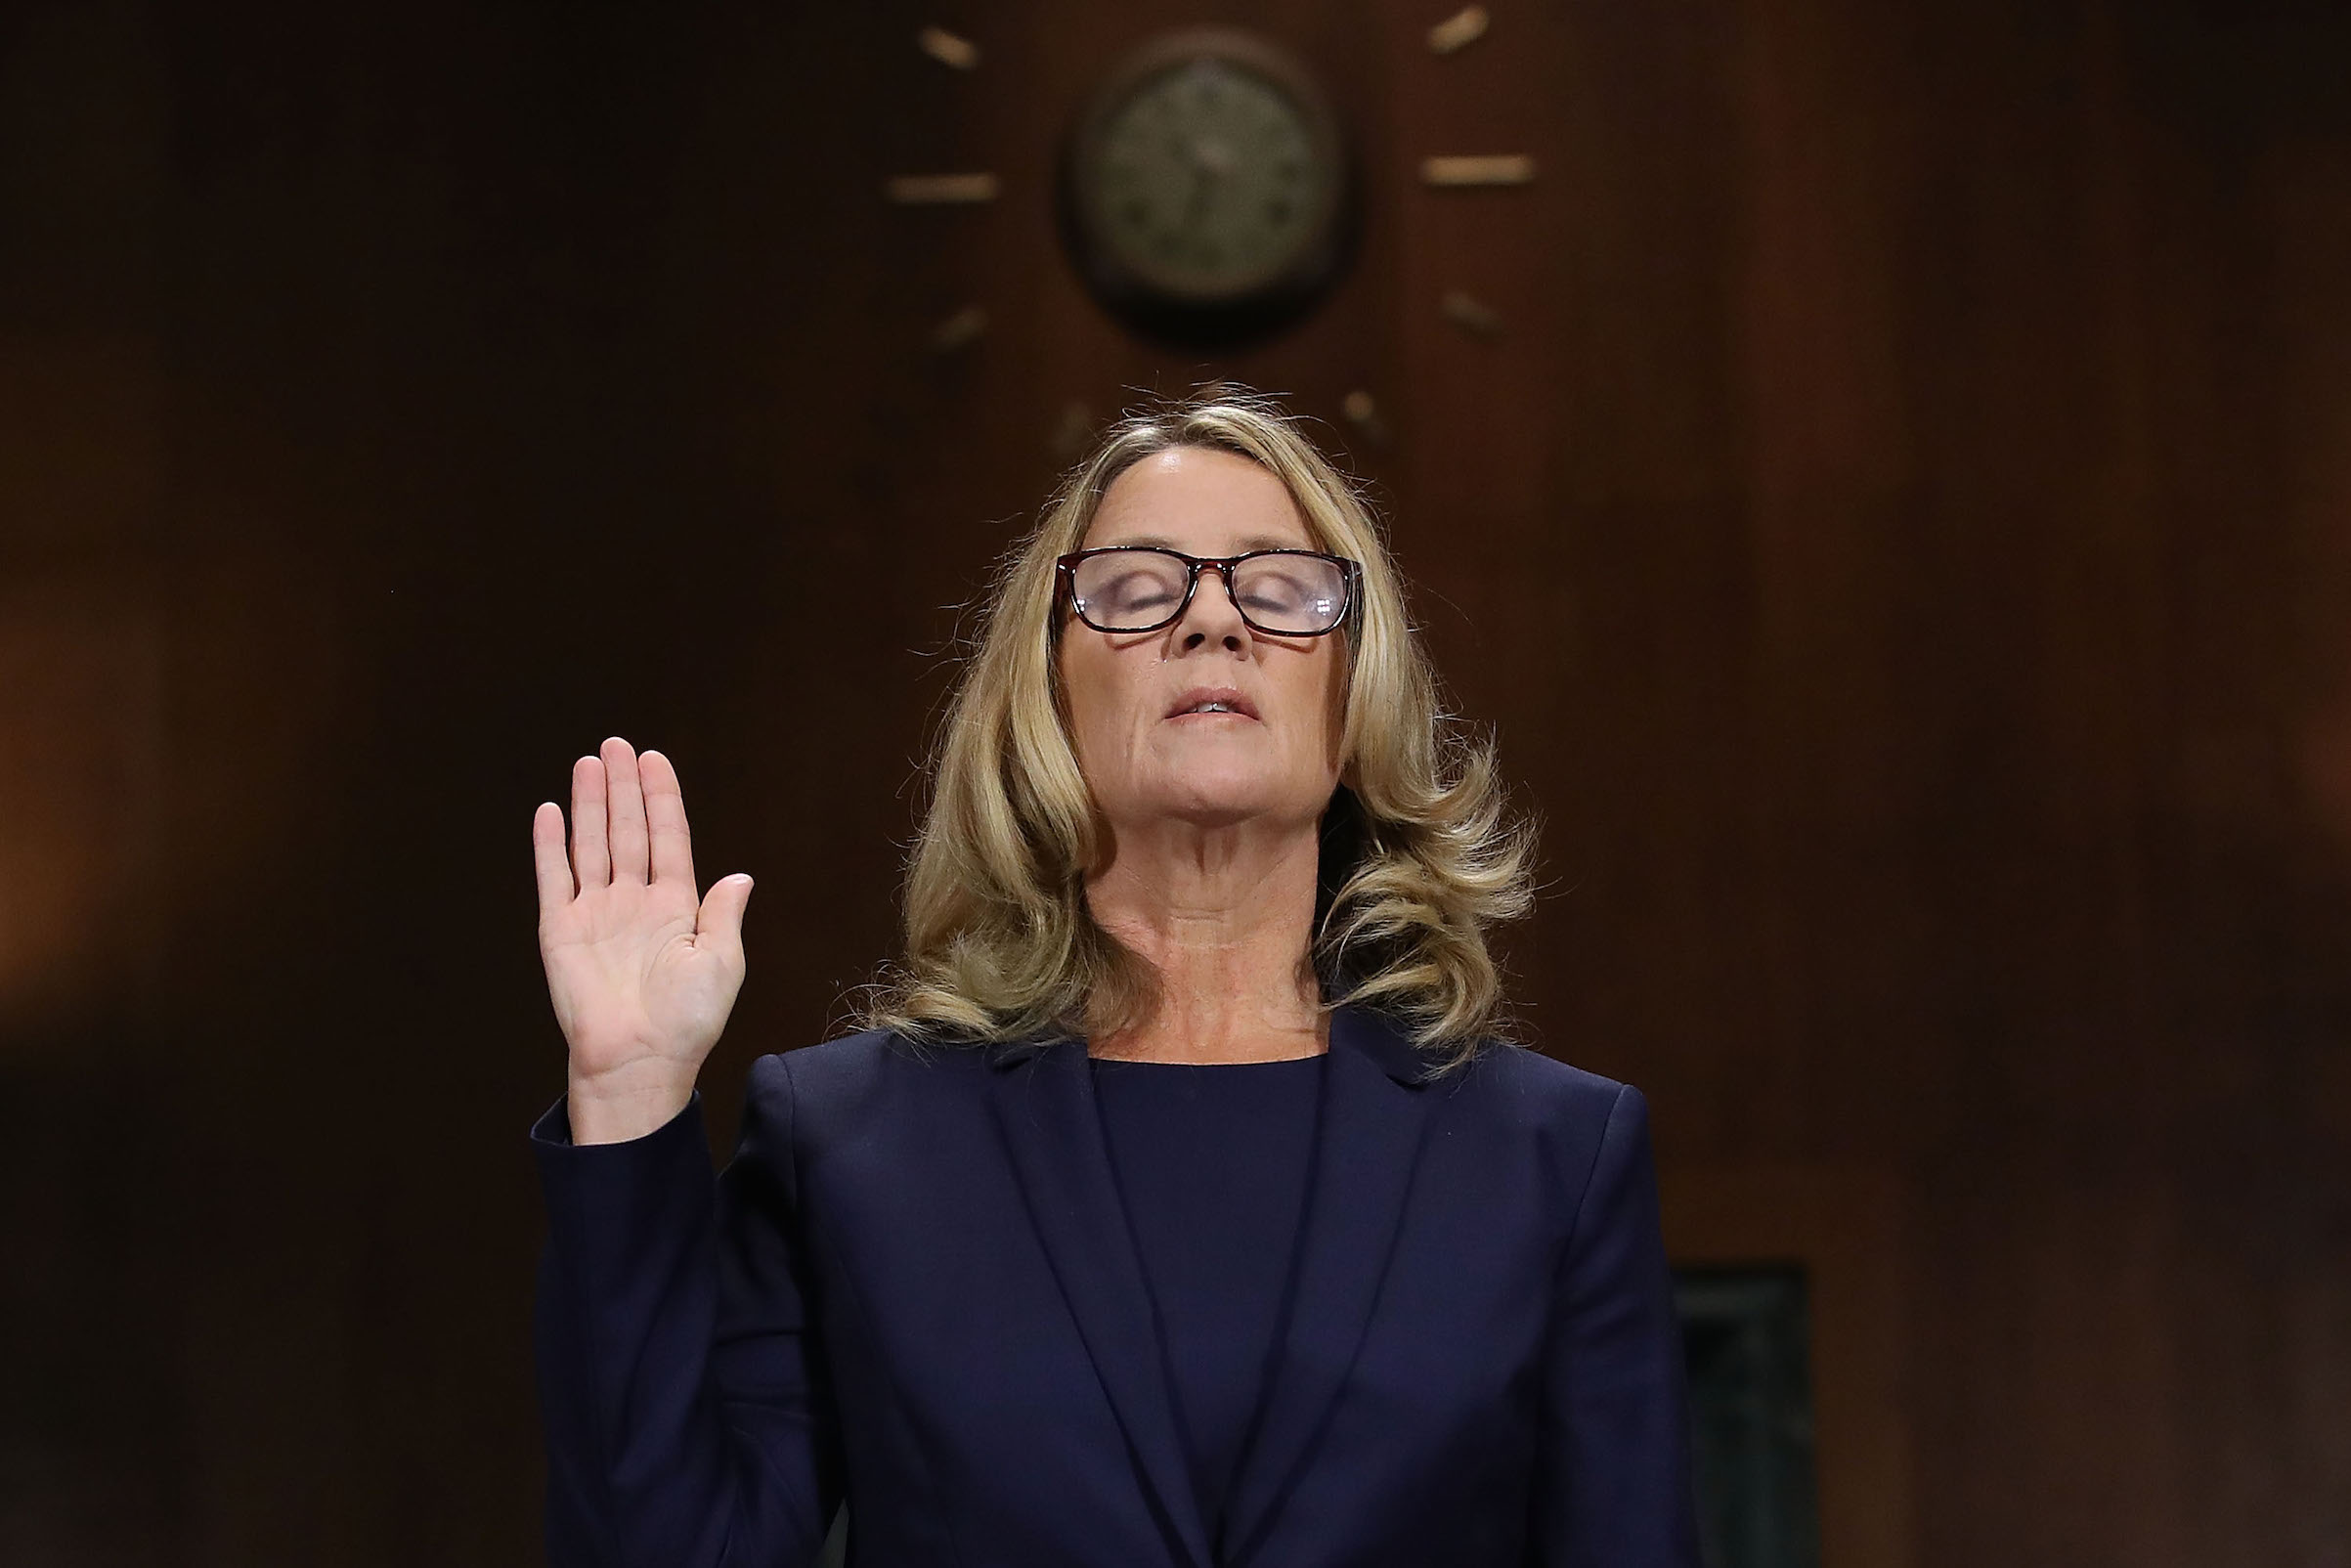 Christine Blasey Ford testifies before the Senate Judiciary Committee in the Dirksen Senate Office Building on Capitol Hill Sept. 27, 2018 in Washington, D.C.